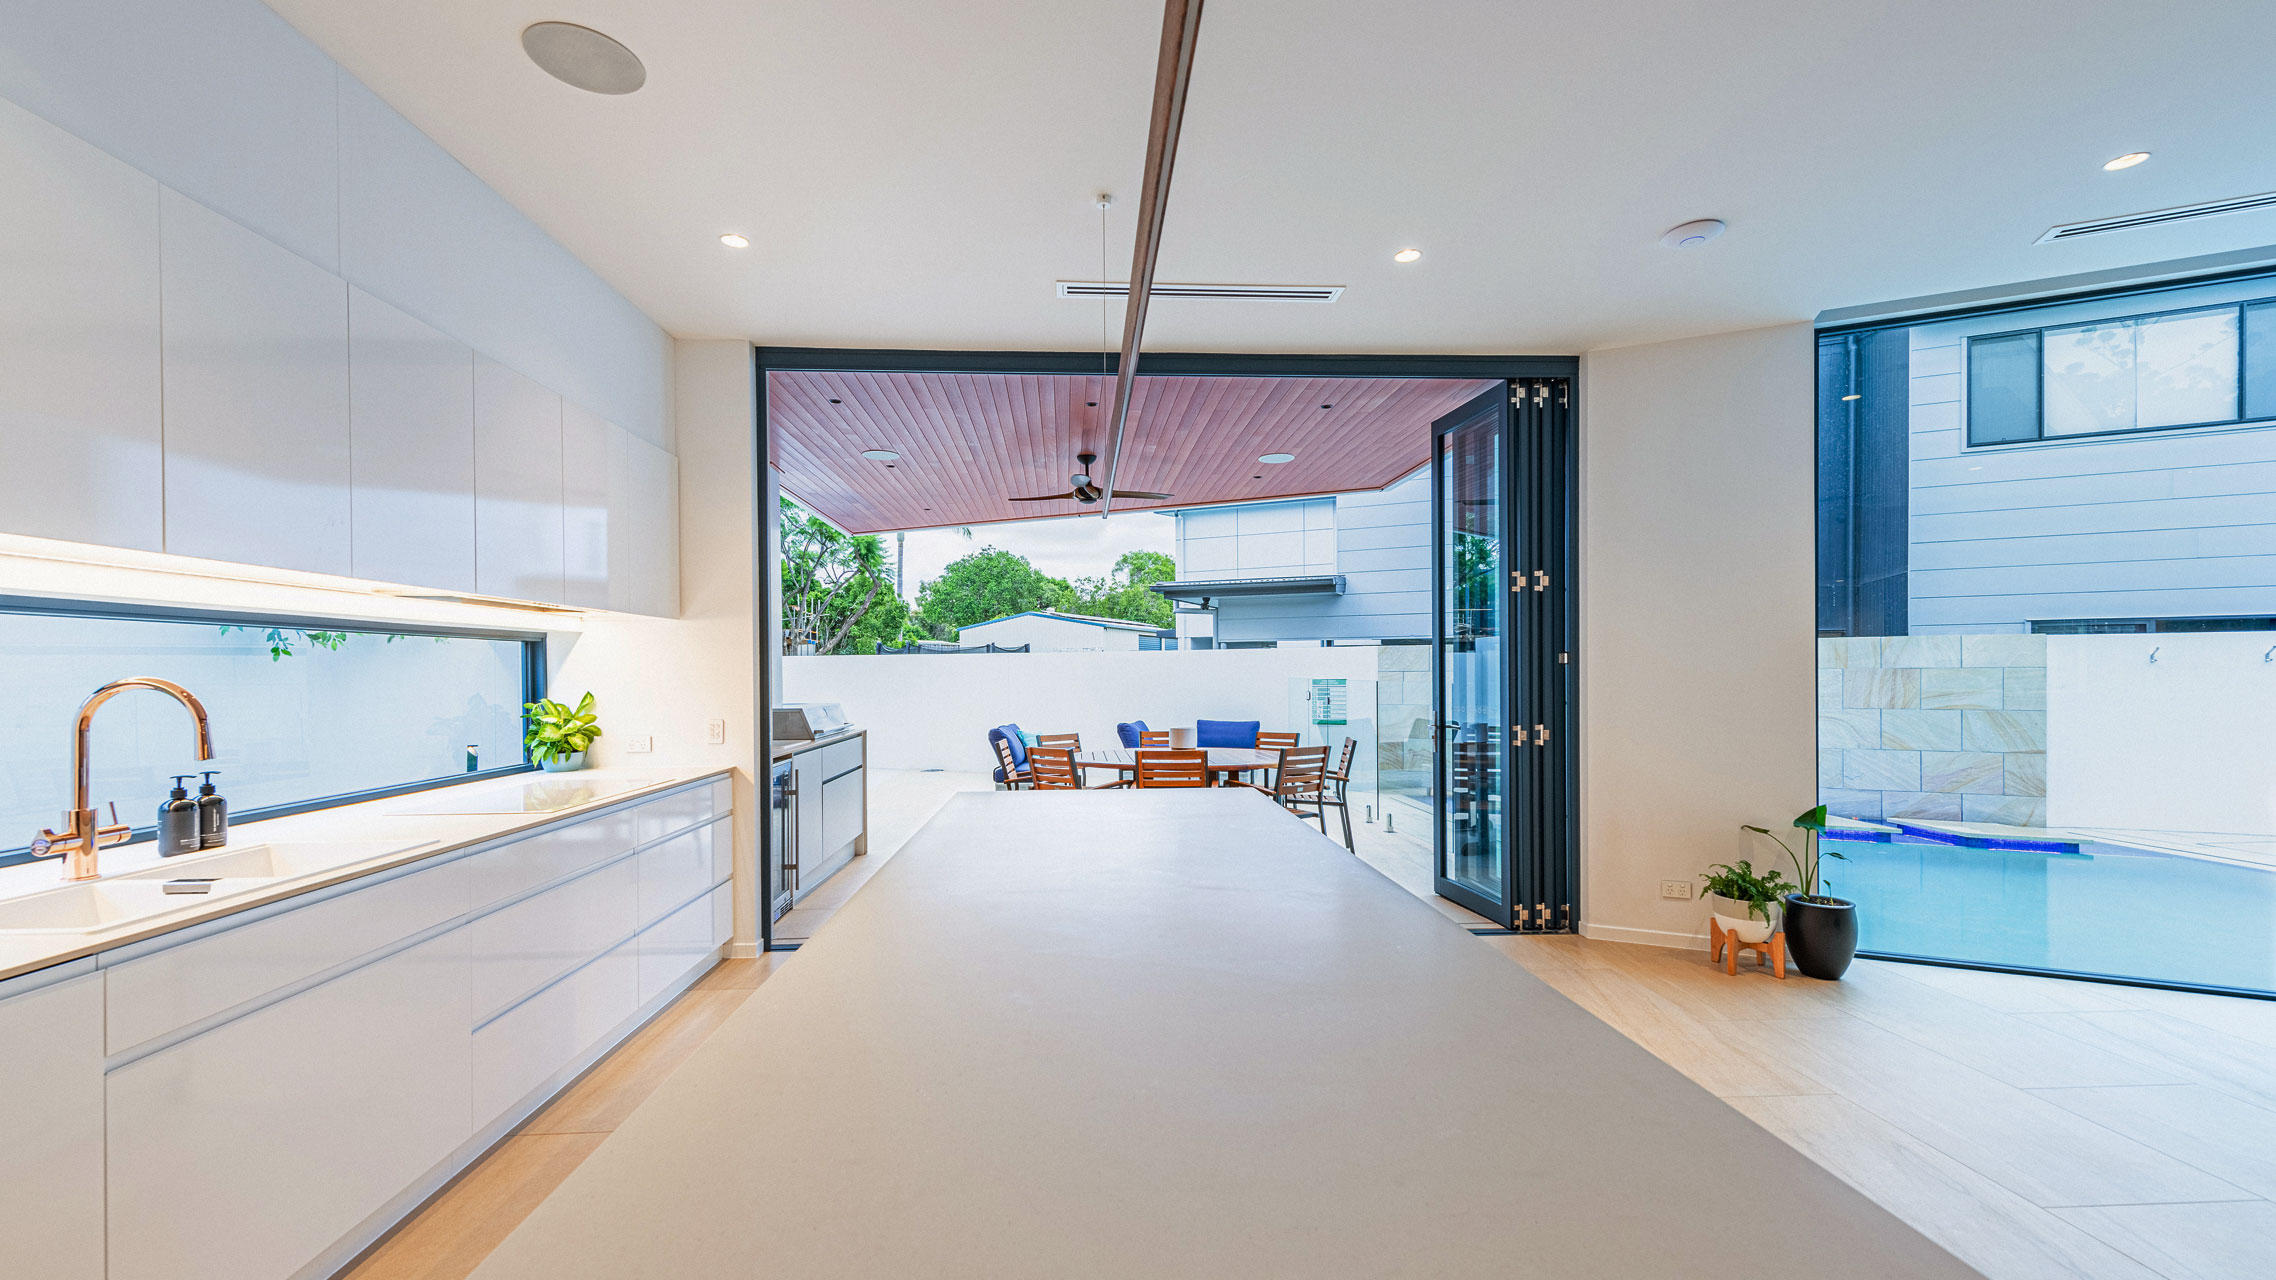 Blue Folding Door connecting inside and outside